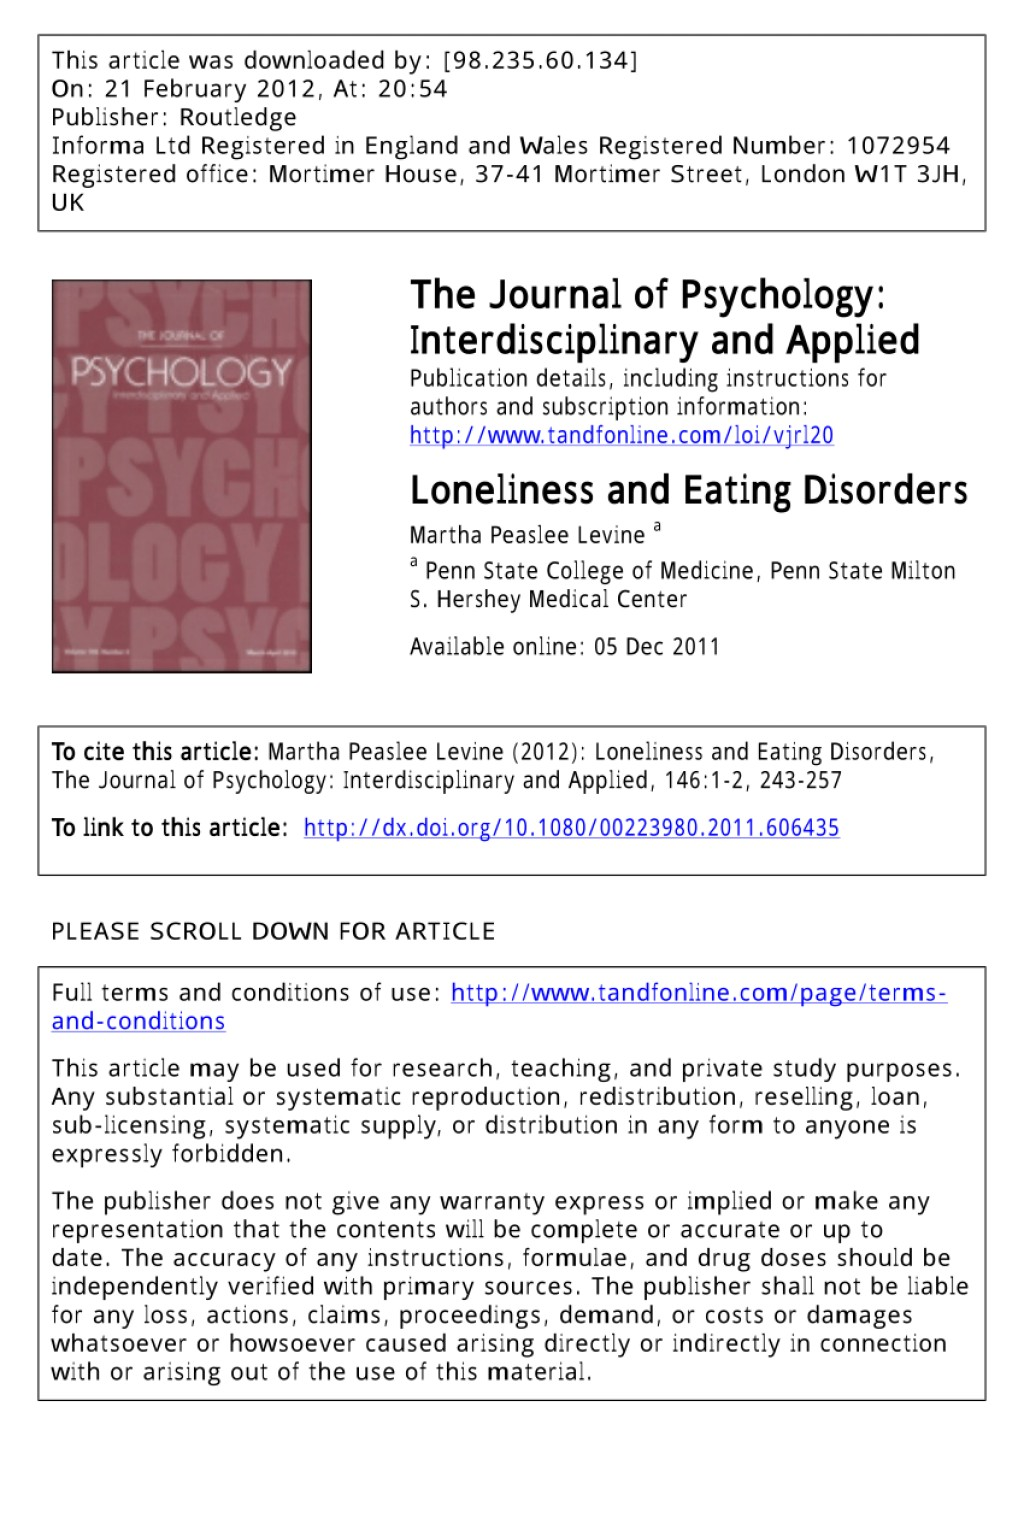 004 Research Paper Largepreview Psychological On Eating Imposing Disorders Psychology Topics Large